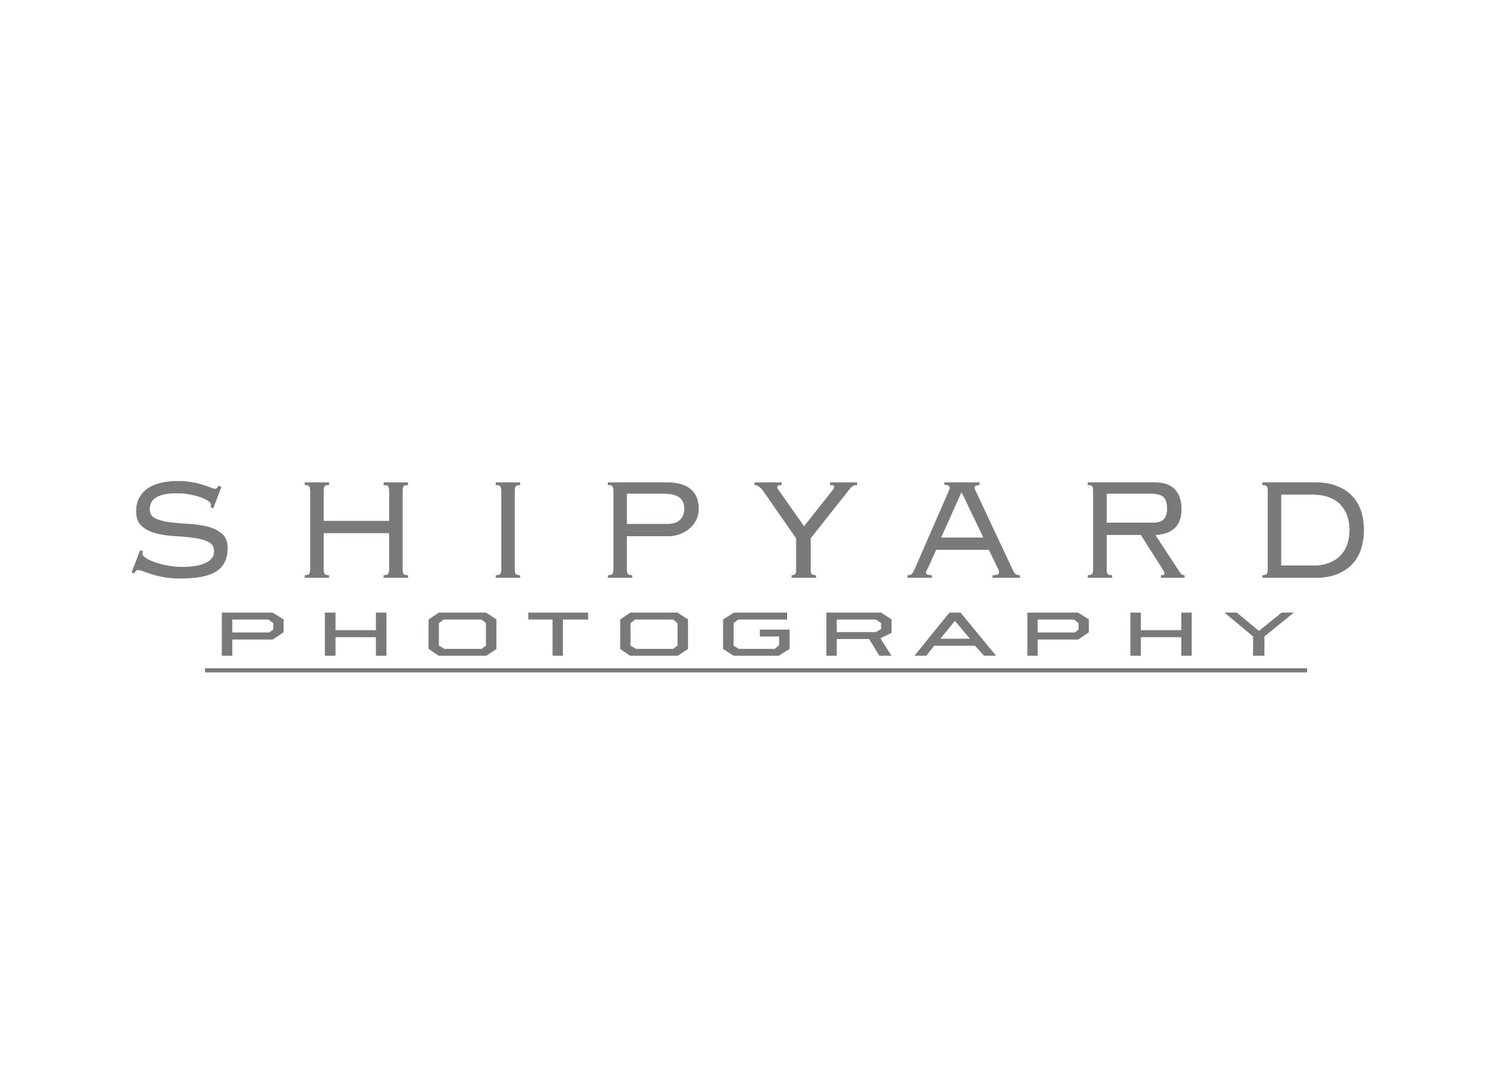 SHIPYARD PHOTOGRAPHY